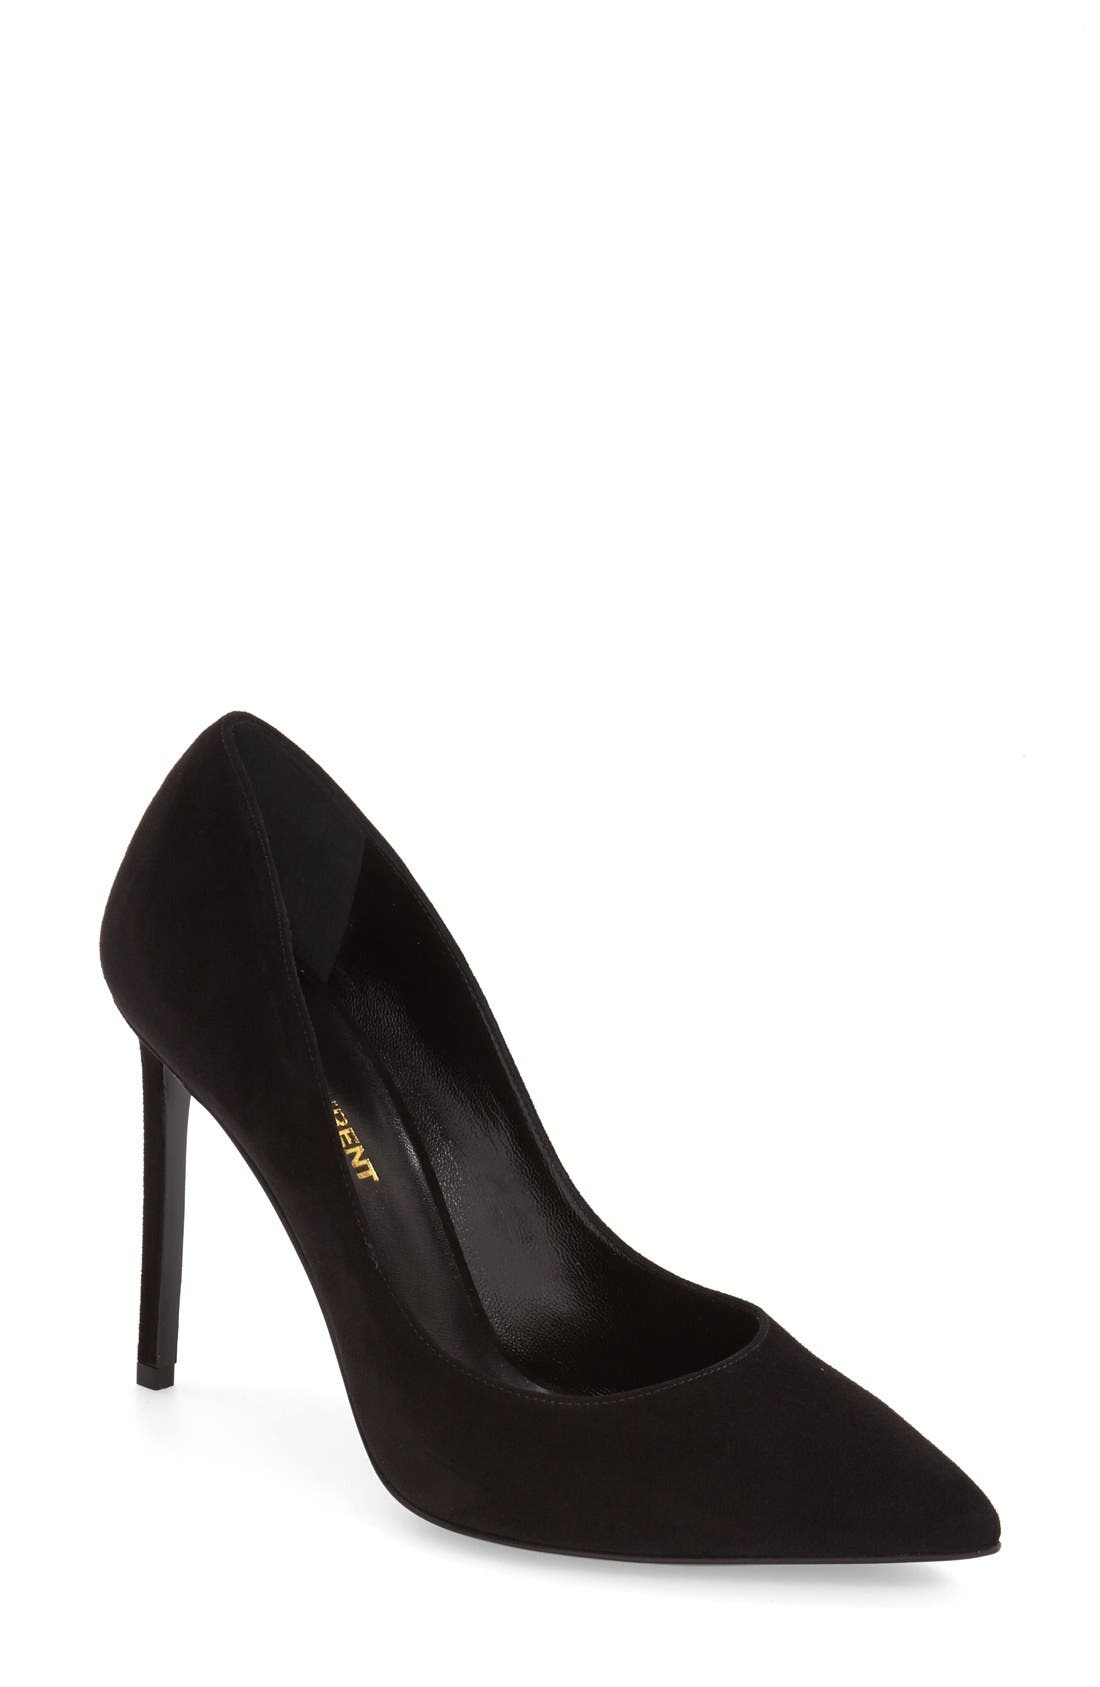 Main Image - Saint Laurent 'Paris Skinny' Pointy Toe Pump (Women)